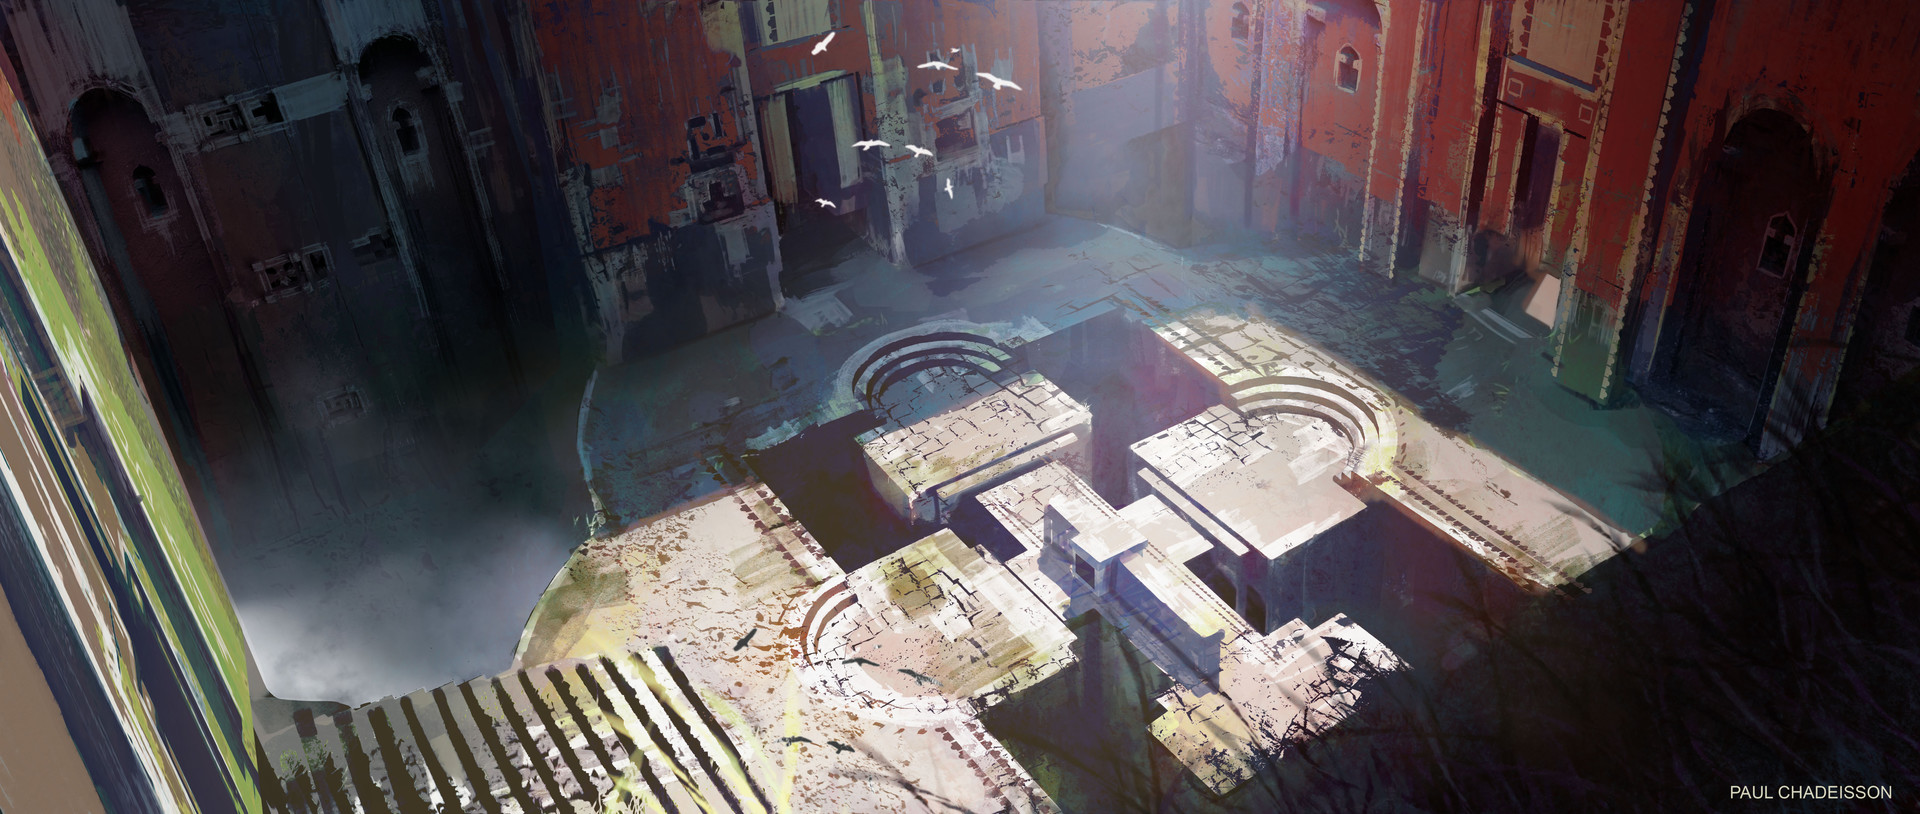 Paul chadeisson concept art test temple 02c